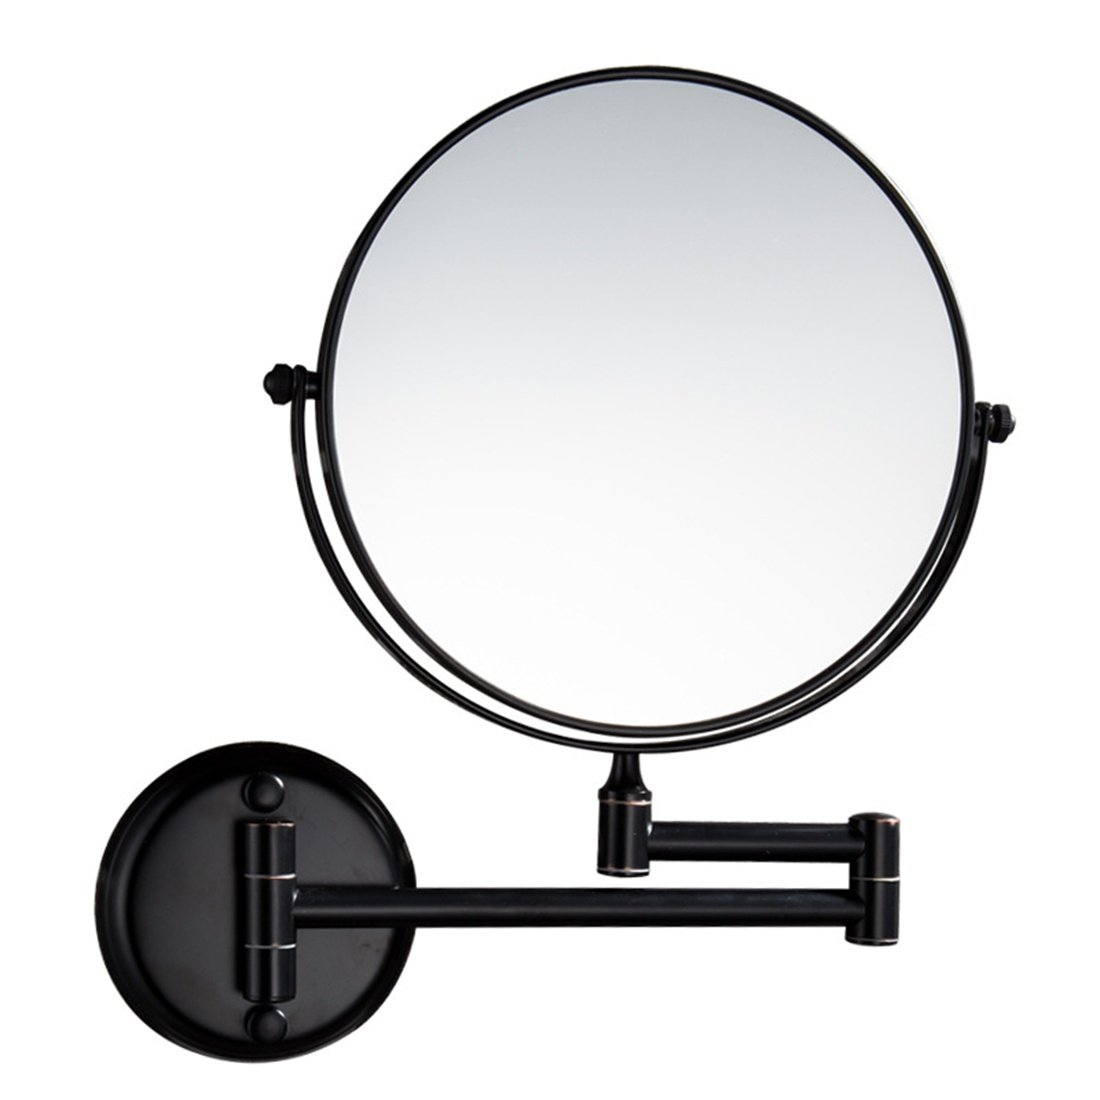 Ysayc Double-sided Makeup Mirror Wall Mounted Extendable Round Rotatory Bath Spa Hotel Table Folding Vanity Mirror, Black, 5x